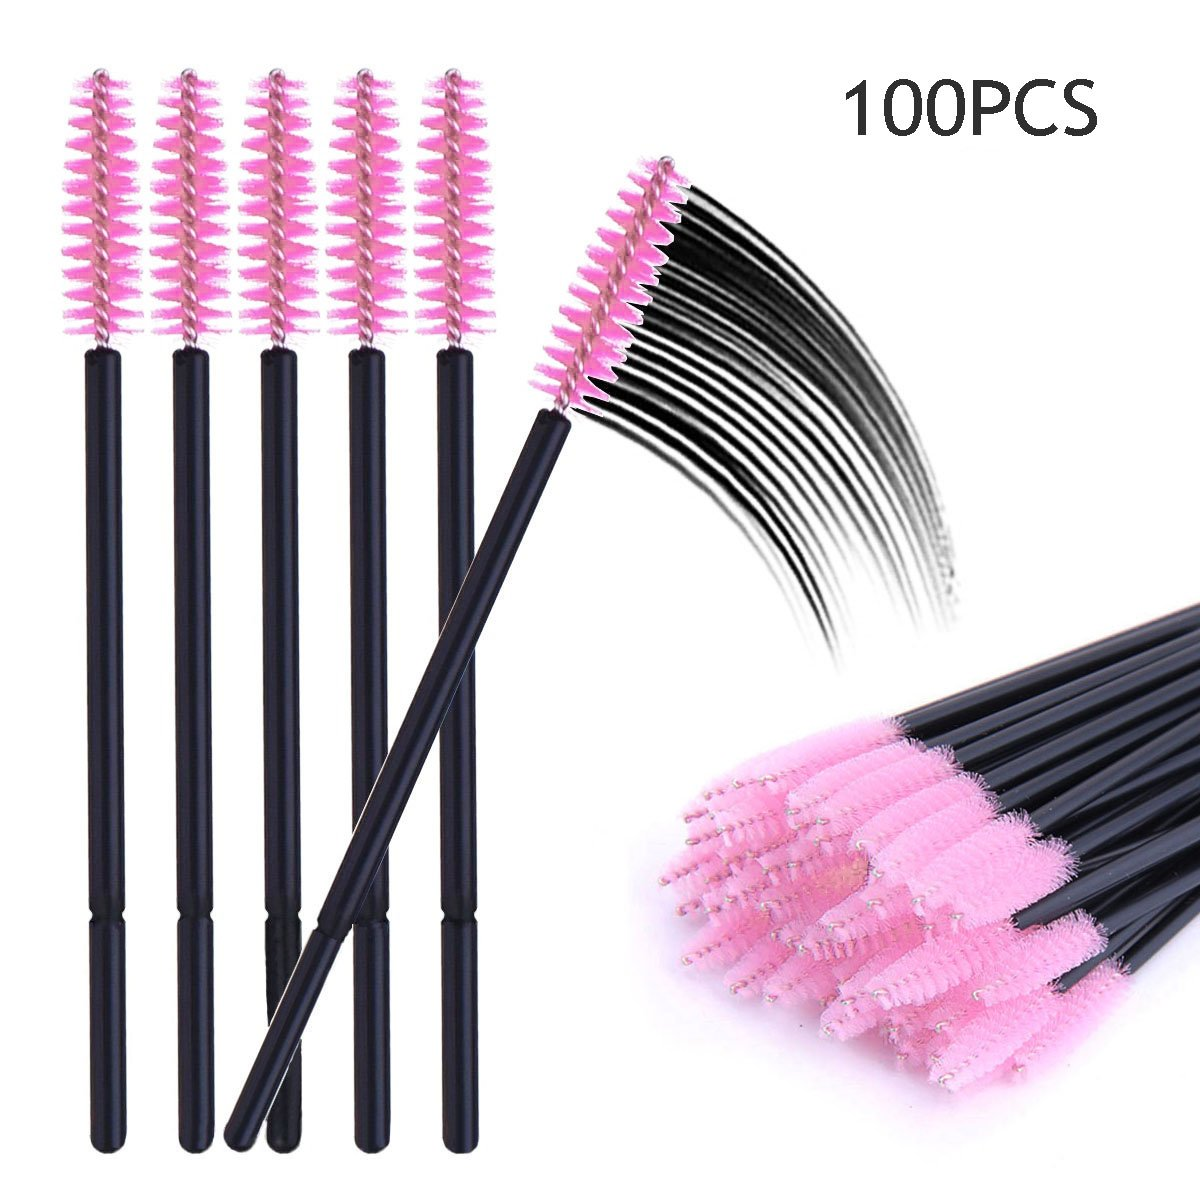 100 Pcs Disposable Mascara Wands Eyelash Brush Applicator Extension Makeup Tool (Pink) TEOYALL